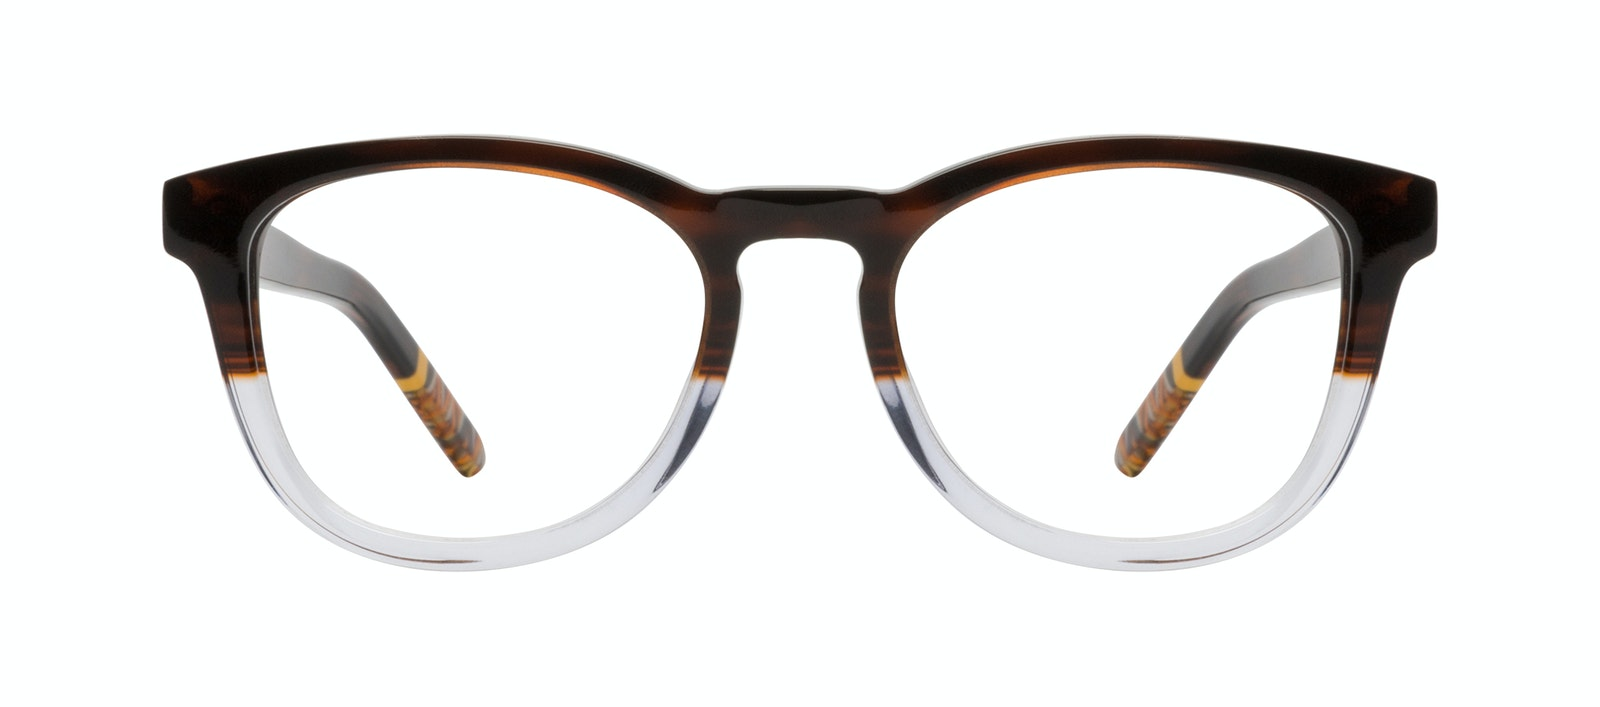 Affordable Fashion Glasses Round Eyeglasses Men Goal Bark Front